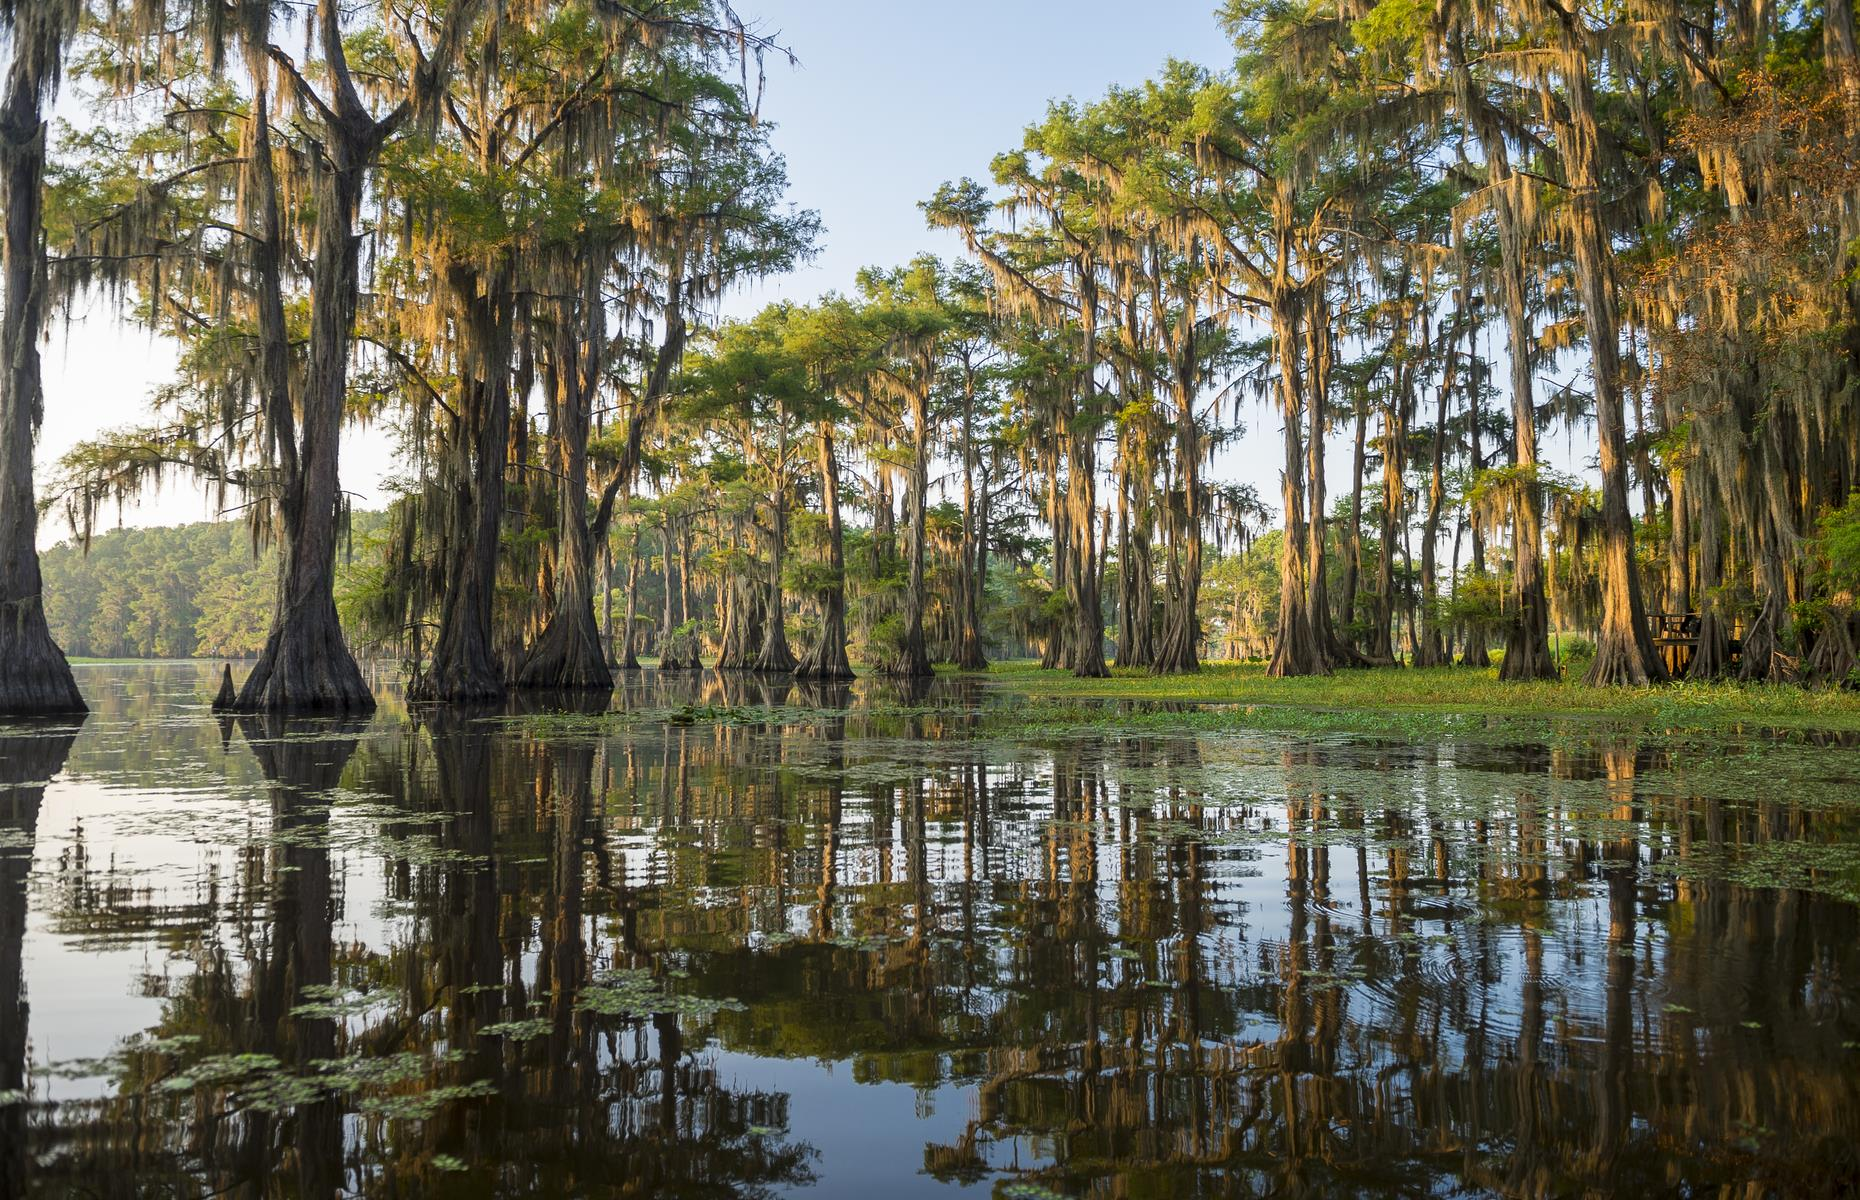 Slide 26 of 31: This swampy lake straddles Texas and Louisiana, and it could hardly be more Southern in its feel and appearance. Spanish moss drips from cypress trees, whose broad, knotted trunks are submerged in the soupy water. Now take a look at these photos of the world's most beautiful trees.